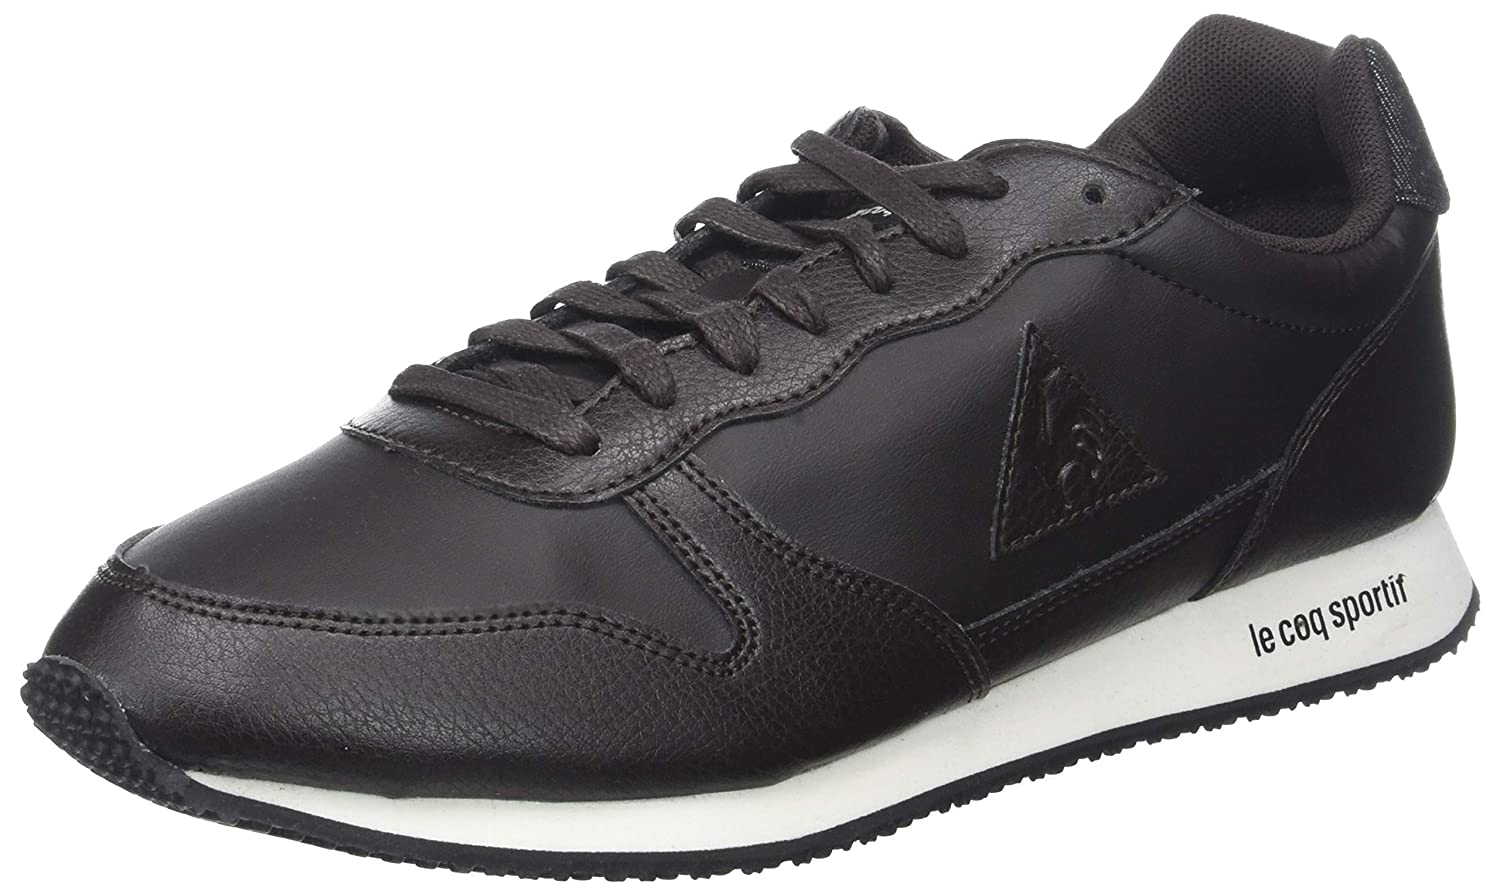 TALLA 43 EU. Le Coq Sportif Alpha Winter Craft Reglisse/Black, Zapatillas para Hombre